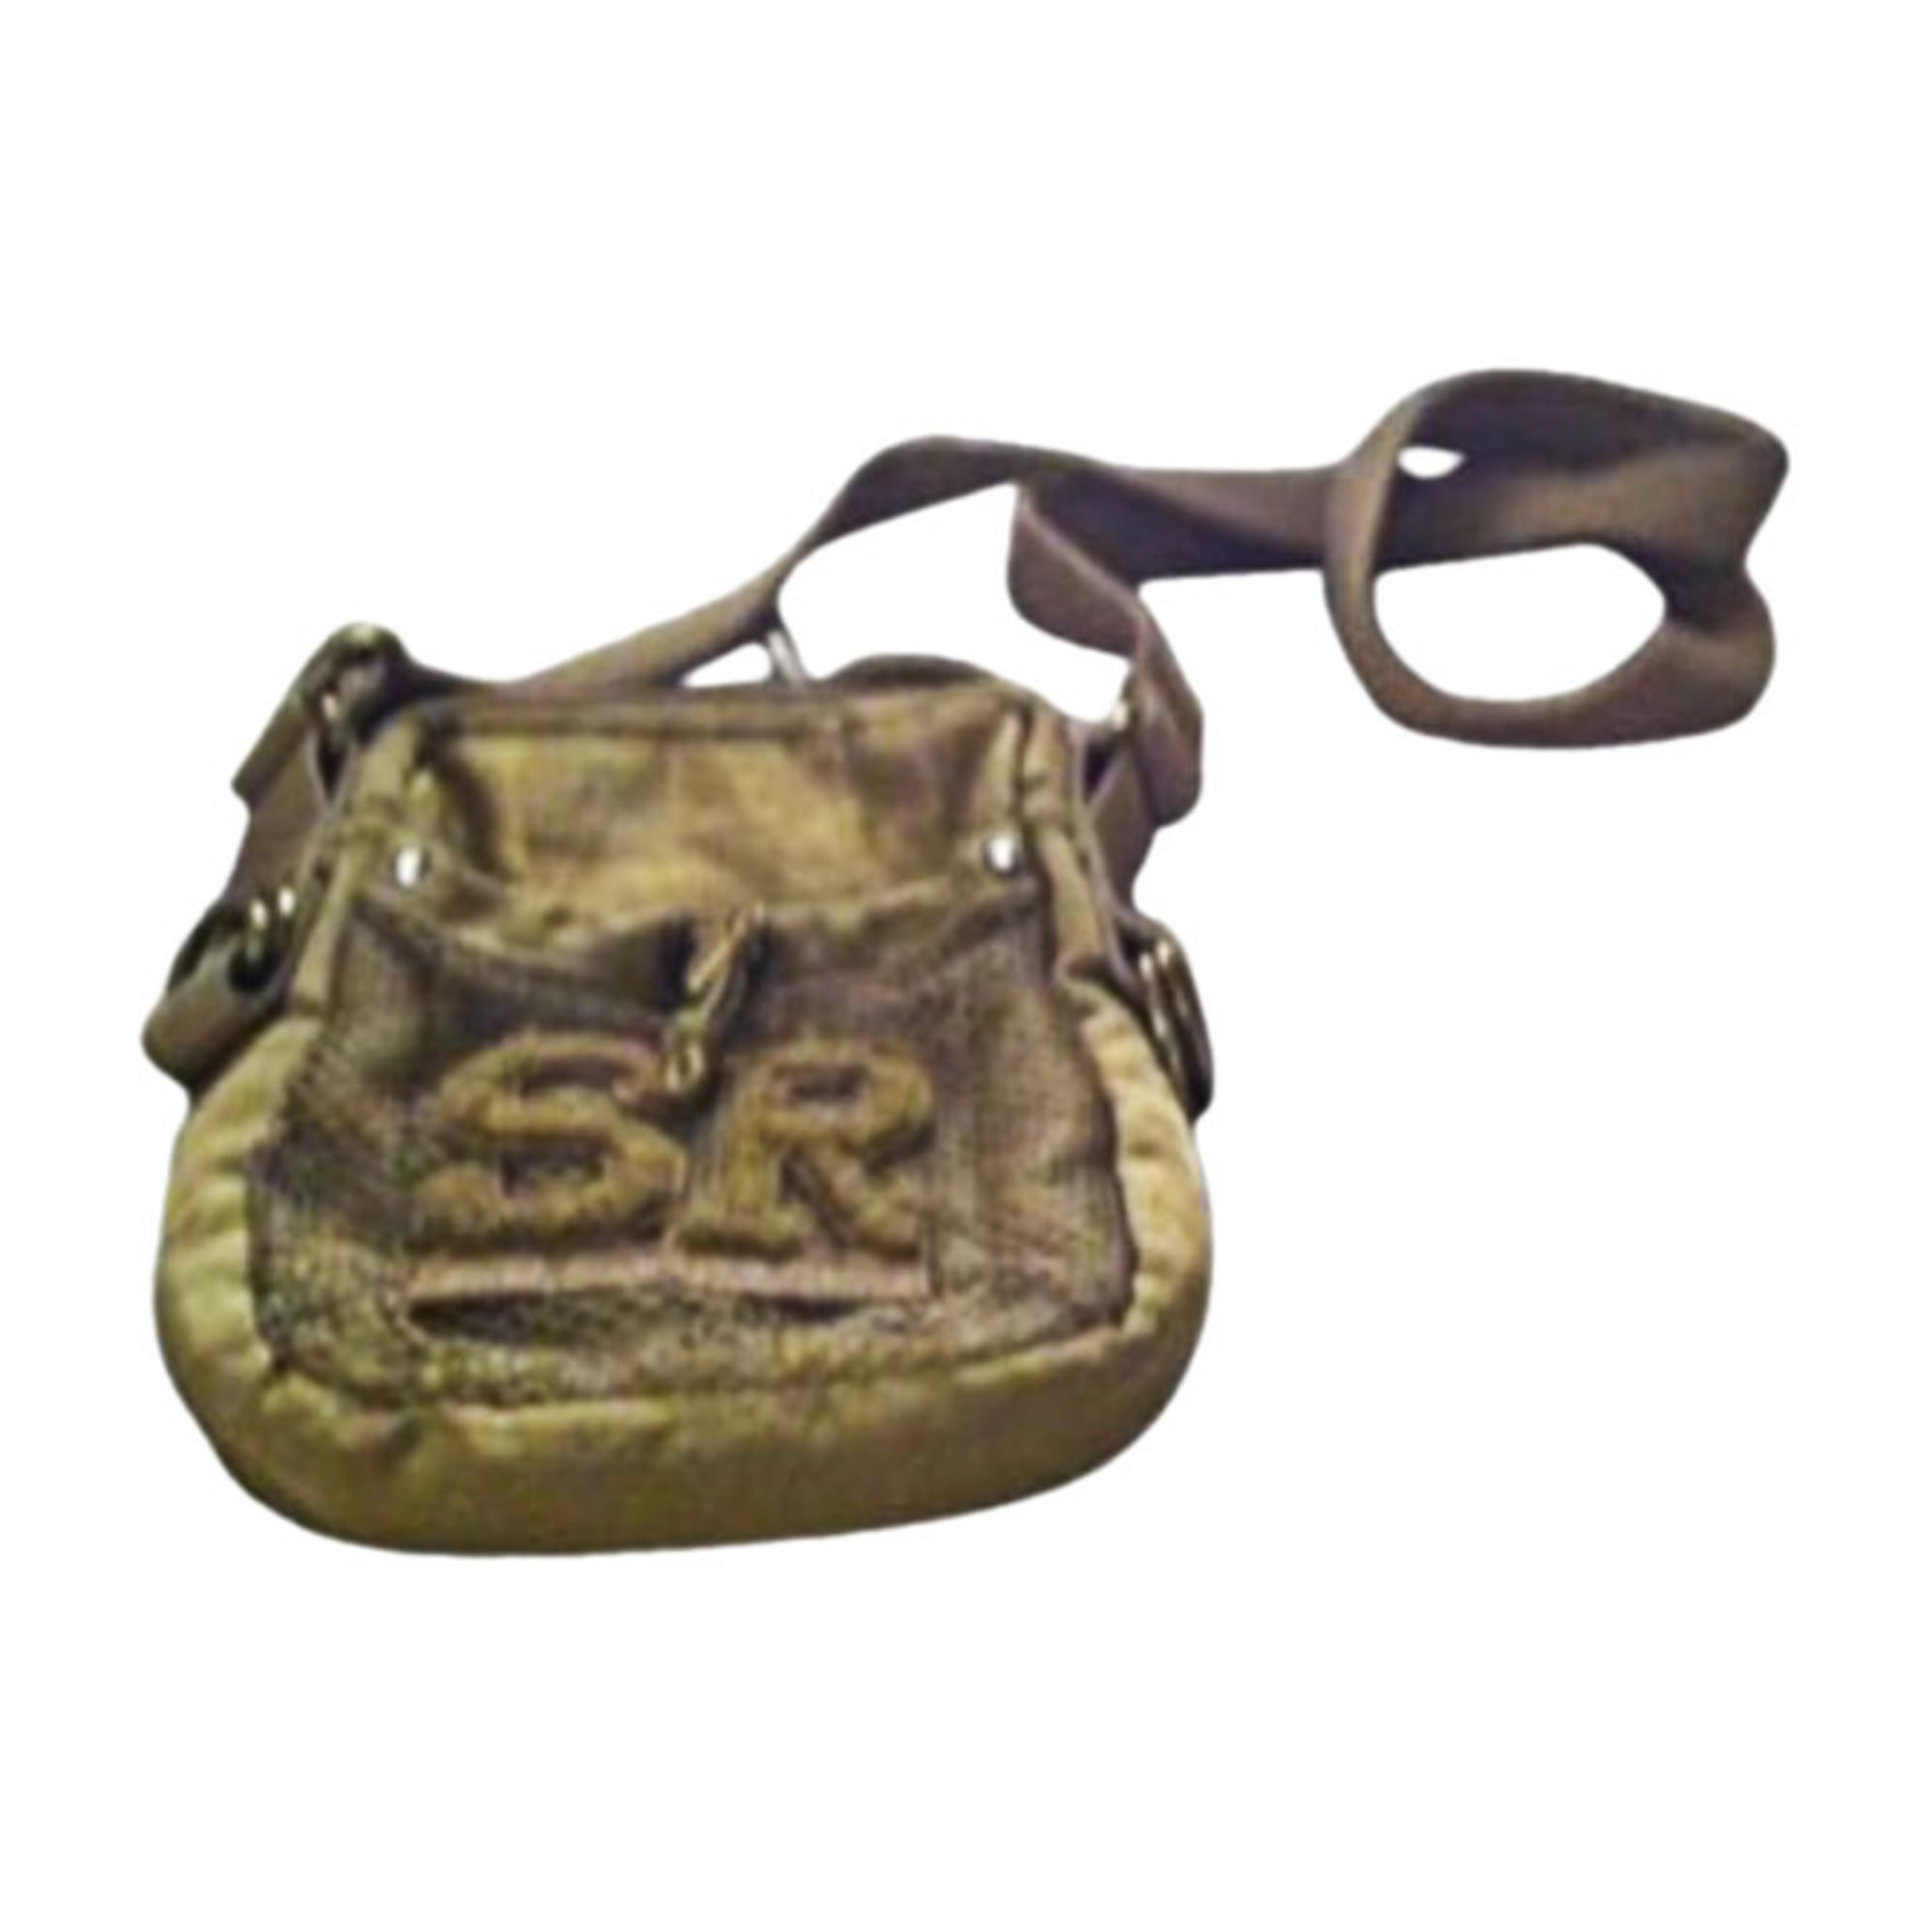 Non-Leather Shoulder Bag SONIA RYKIEL Golden, bronze, copper